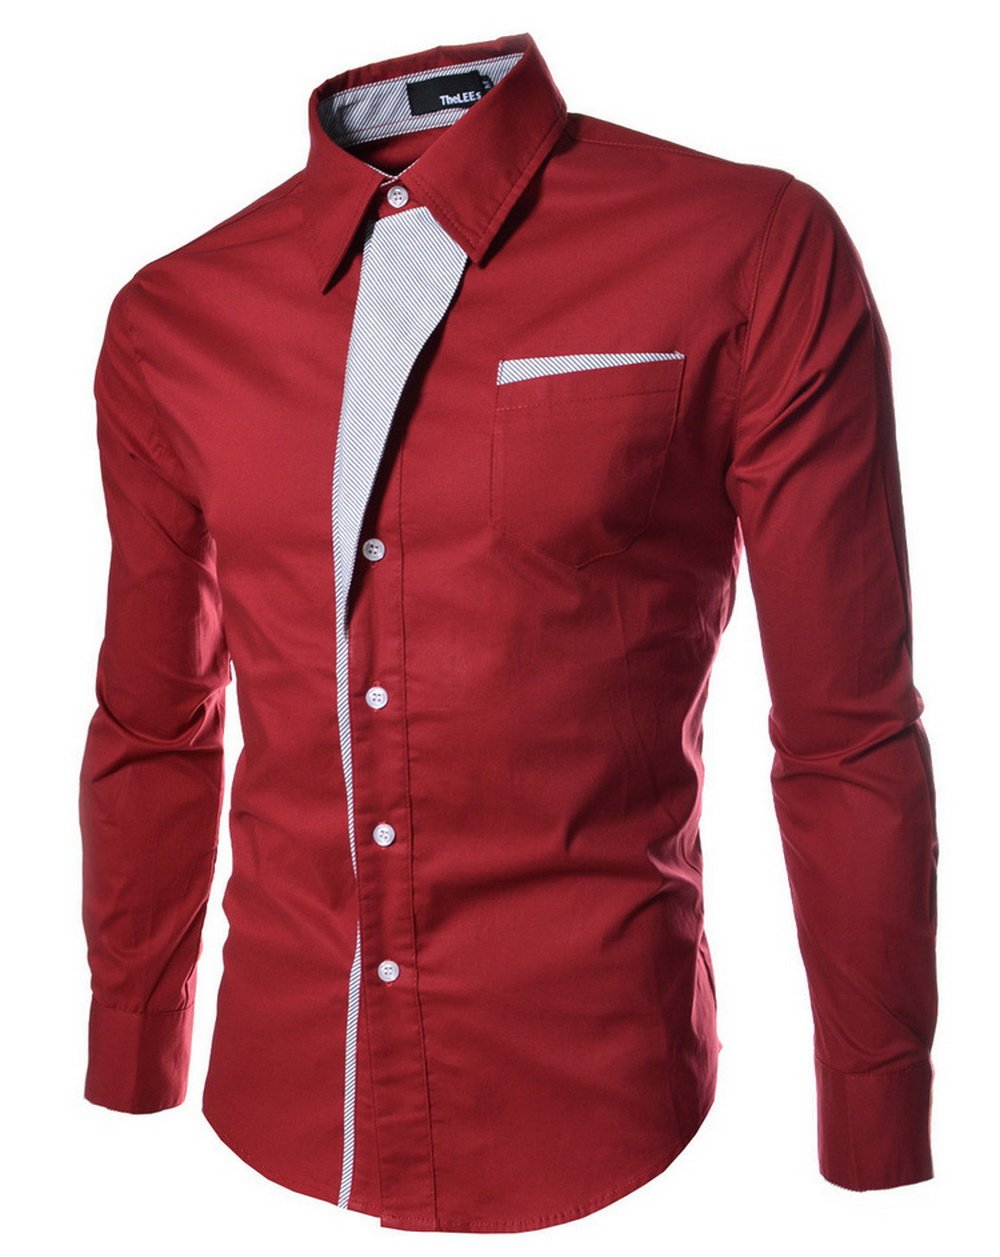 Amazon.com : Casual Men Shirts Long Sleeve Camisa Masculina Camisetas Social Roupas Blusas Slim Fit Casual-shirts for Male Clothing (XXL, Red) : Baby